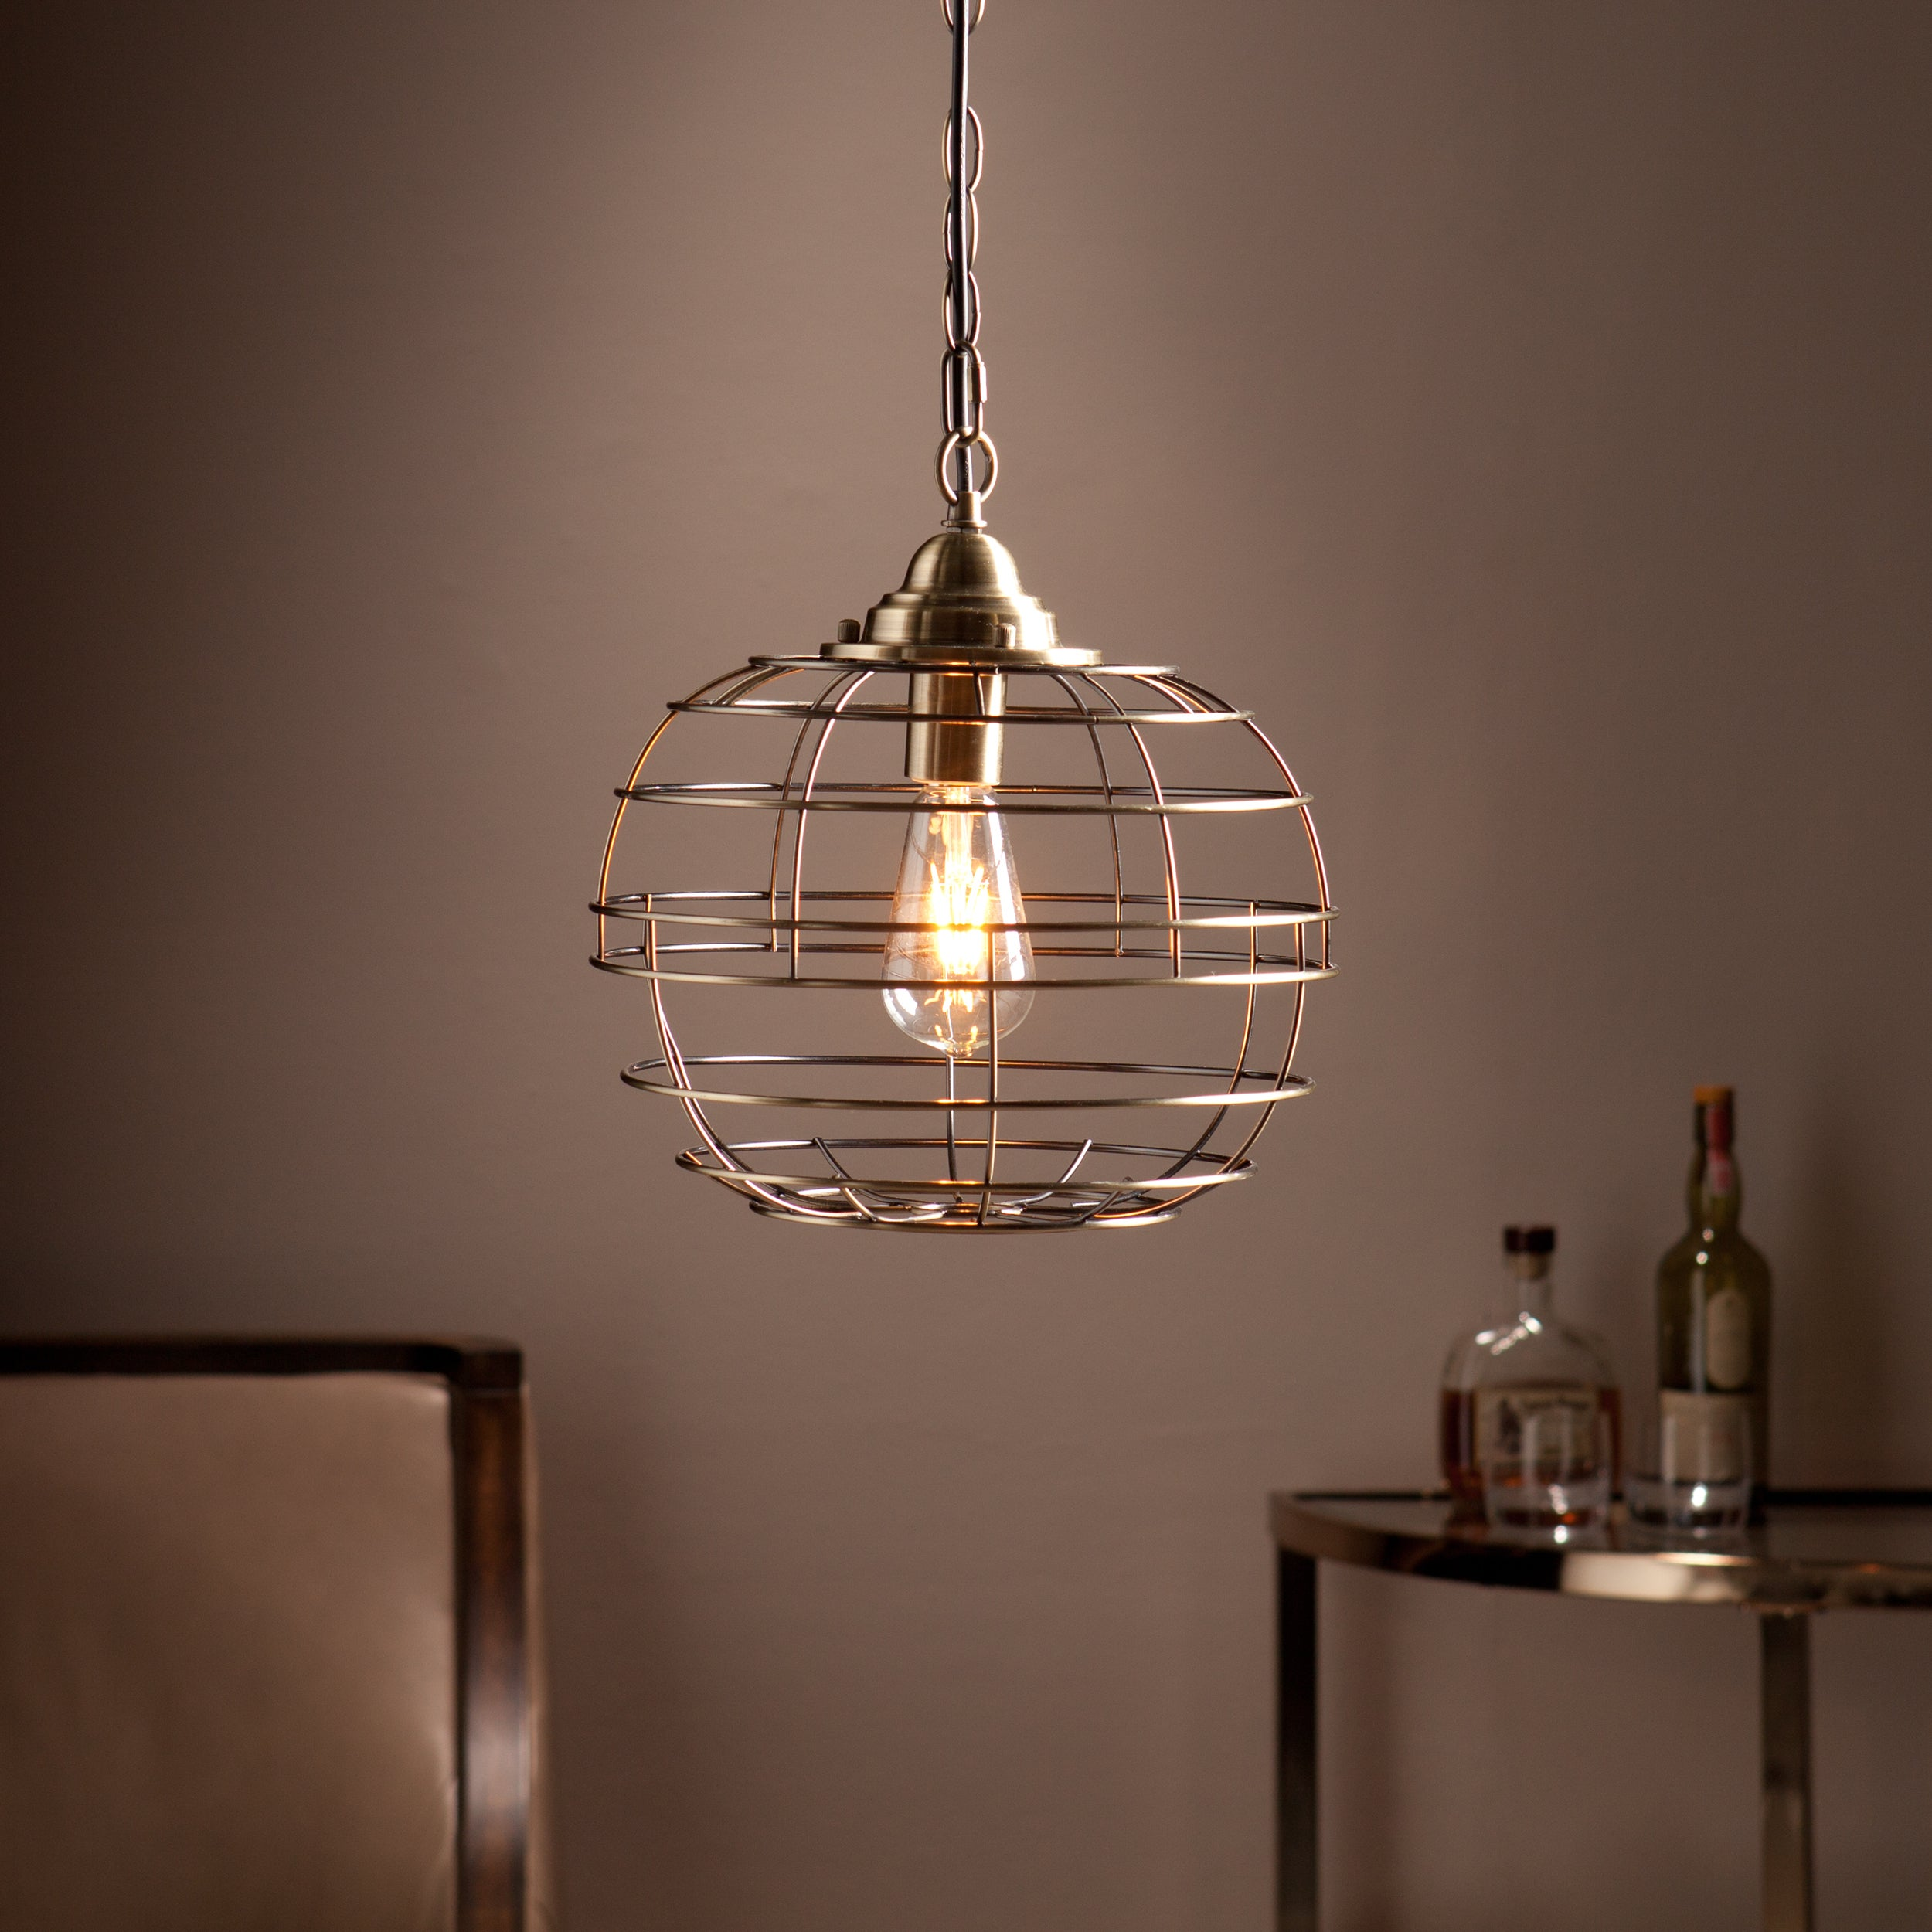 Shop Harper Blvd Reade Pendant Light